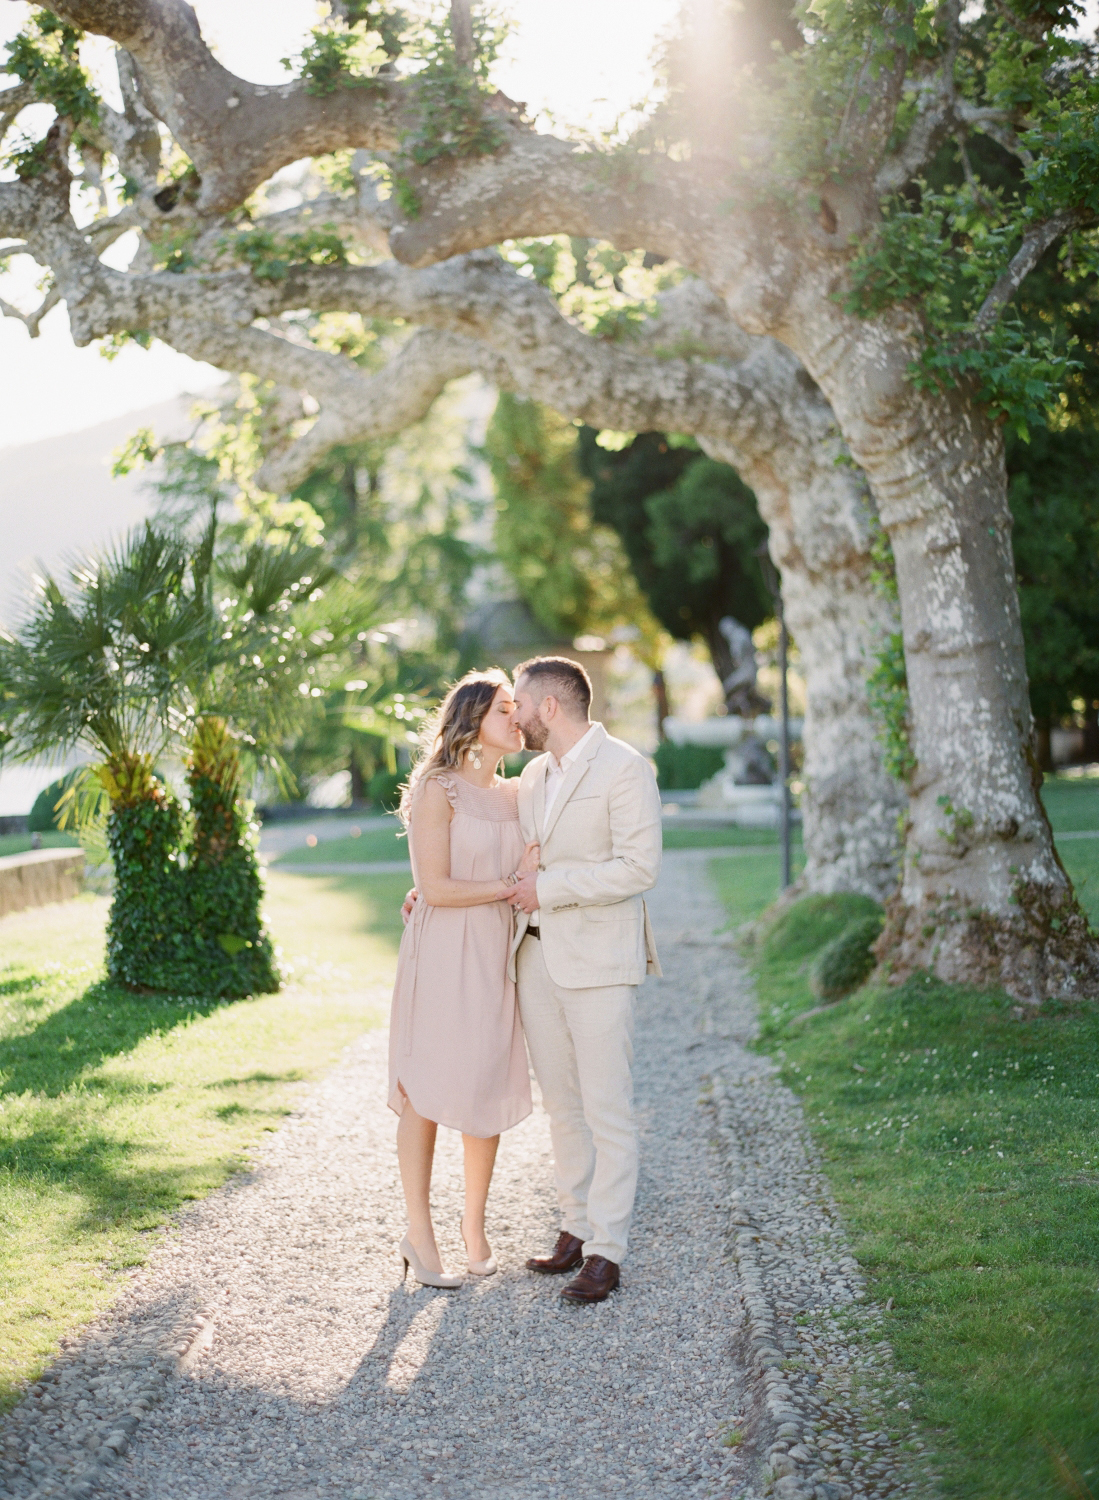 lake como film wedding photographer nikol bodnarova photography italy wedding.jpg